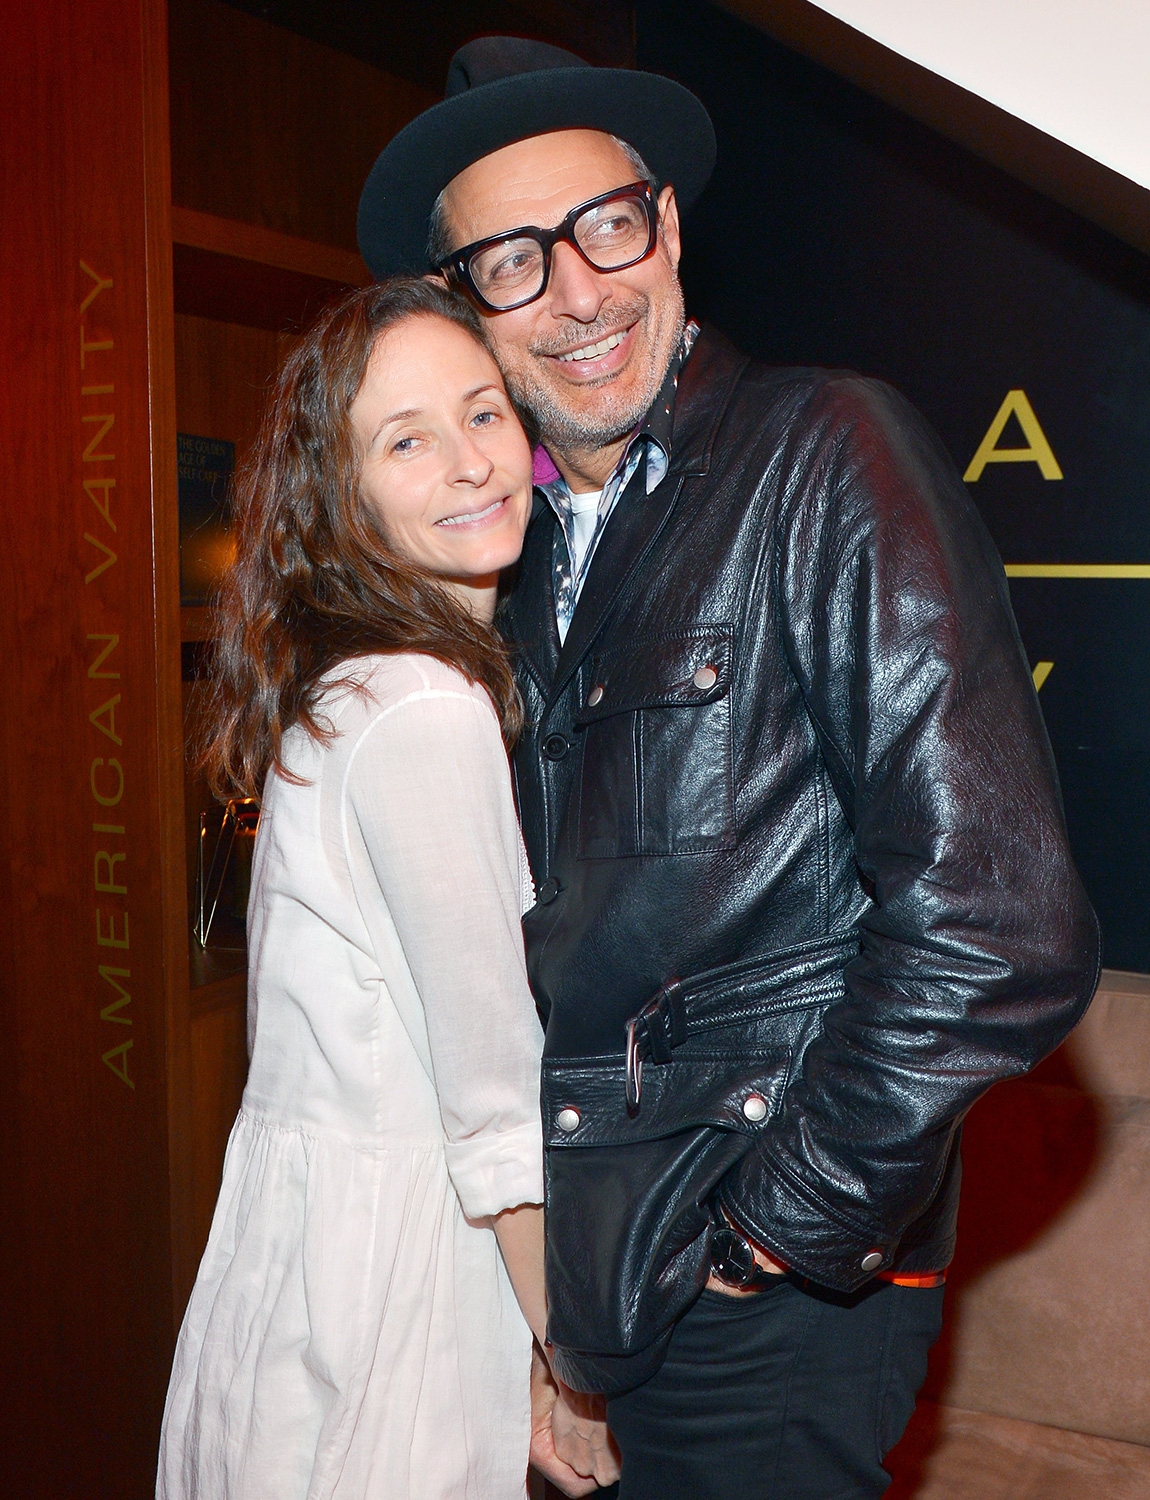 Emilie Livingston and Jeff Goldblum attend the American Vanity Skincare Launch Party at Sunset Tower on March 04, 2020 in Los Angeles, California